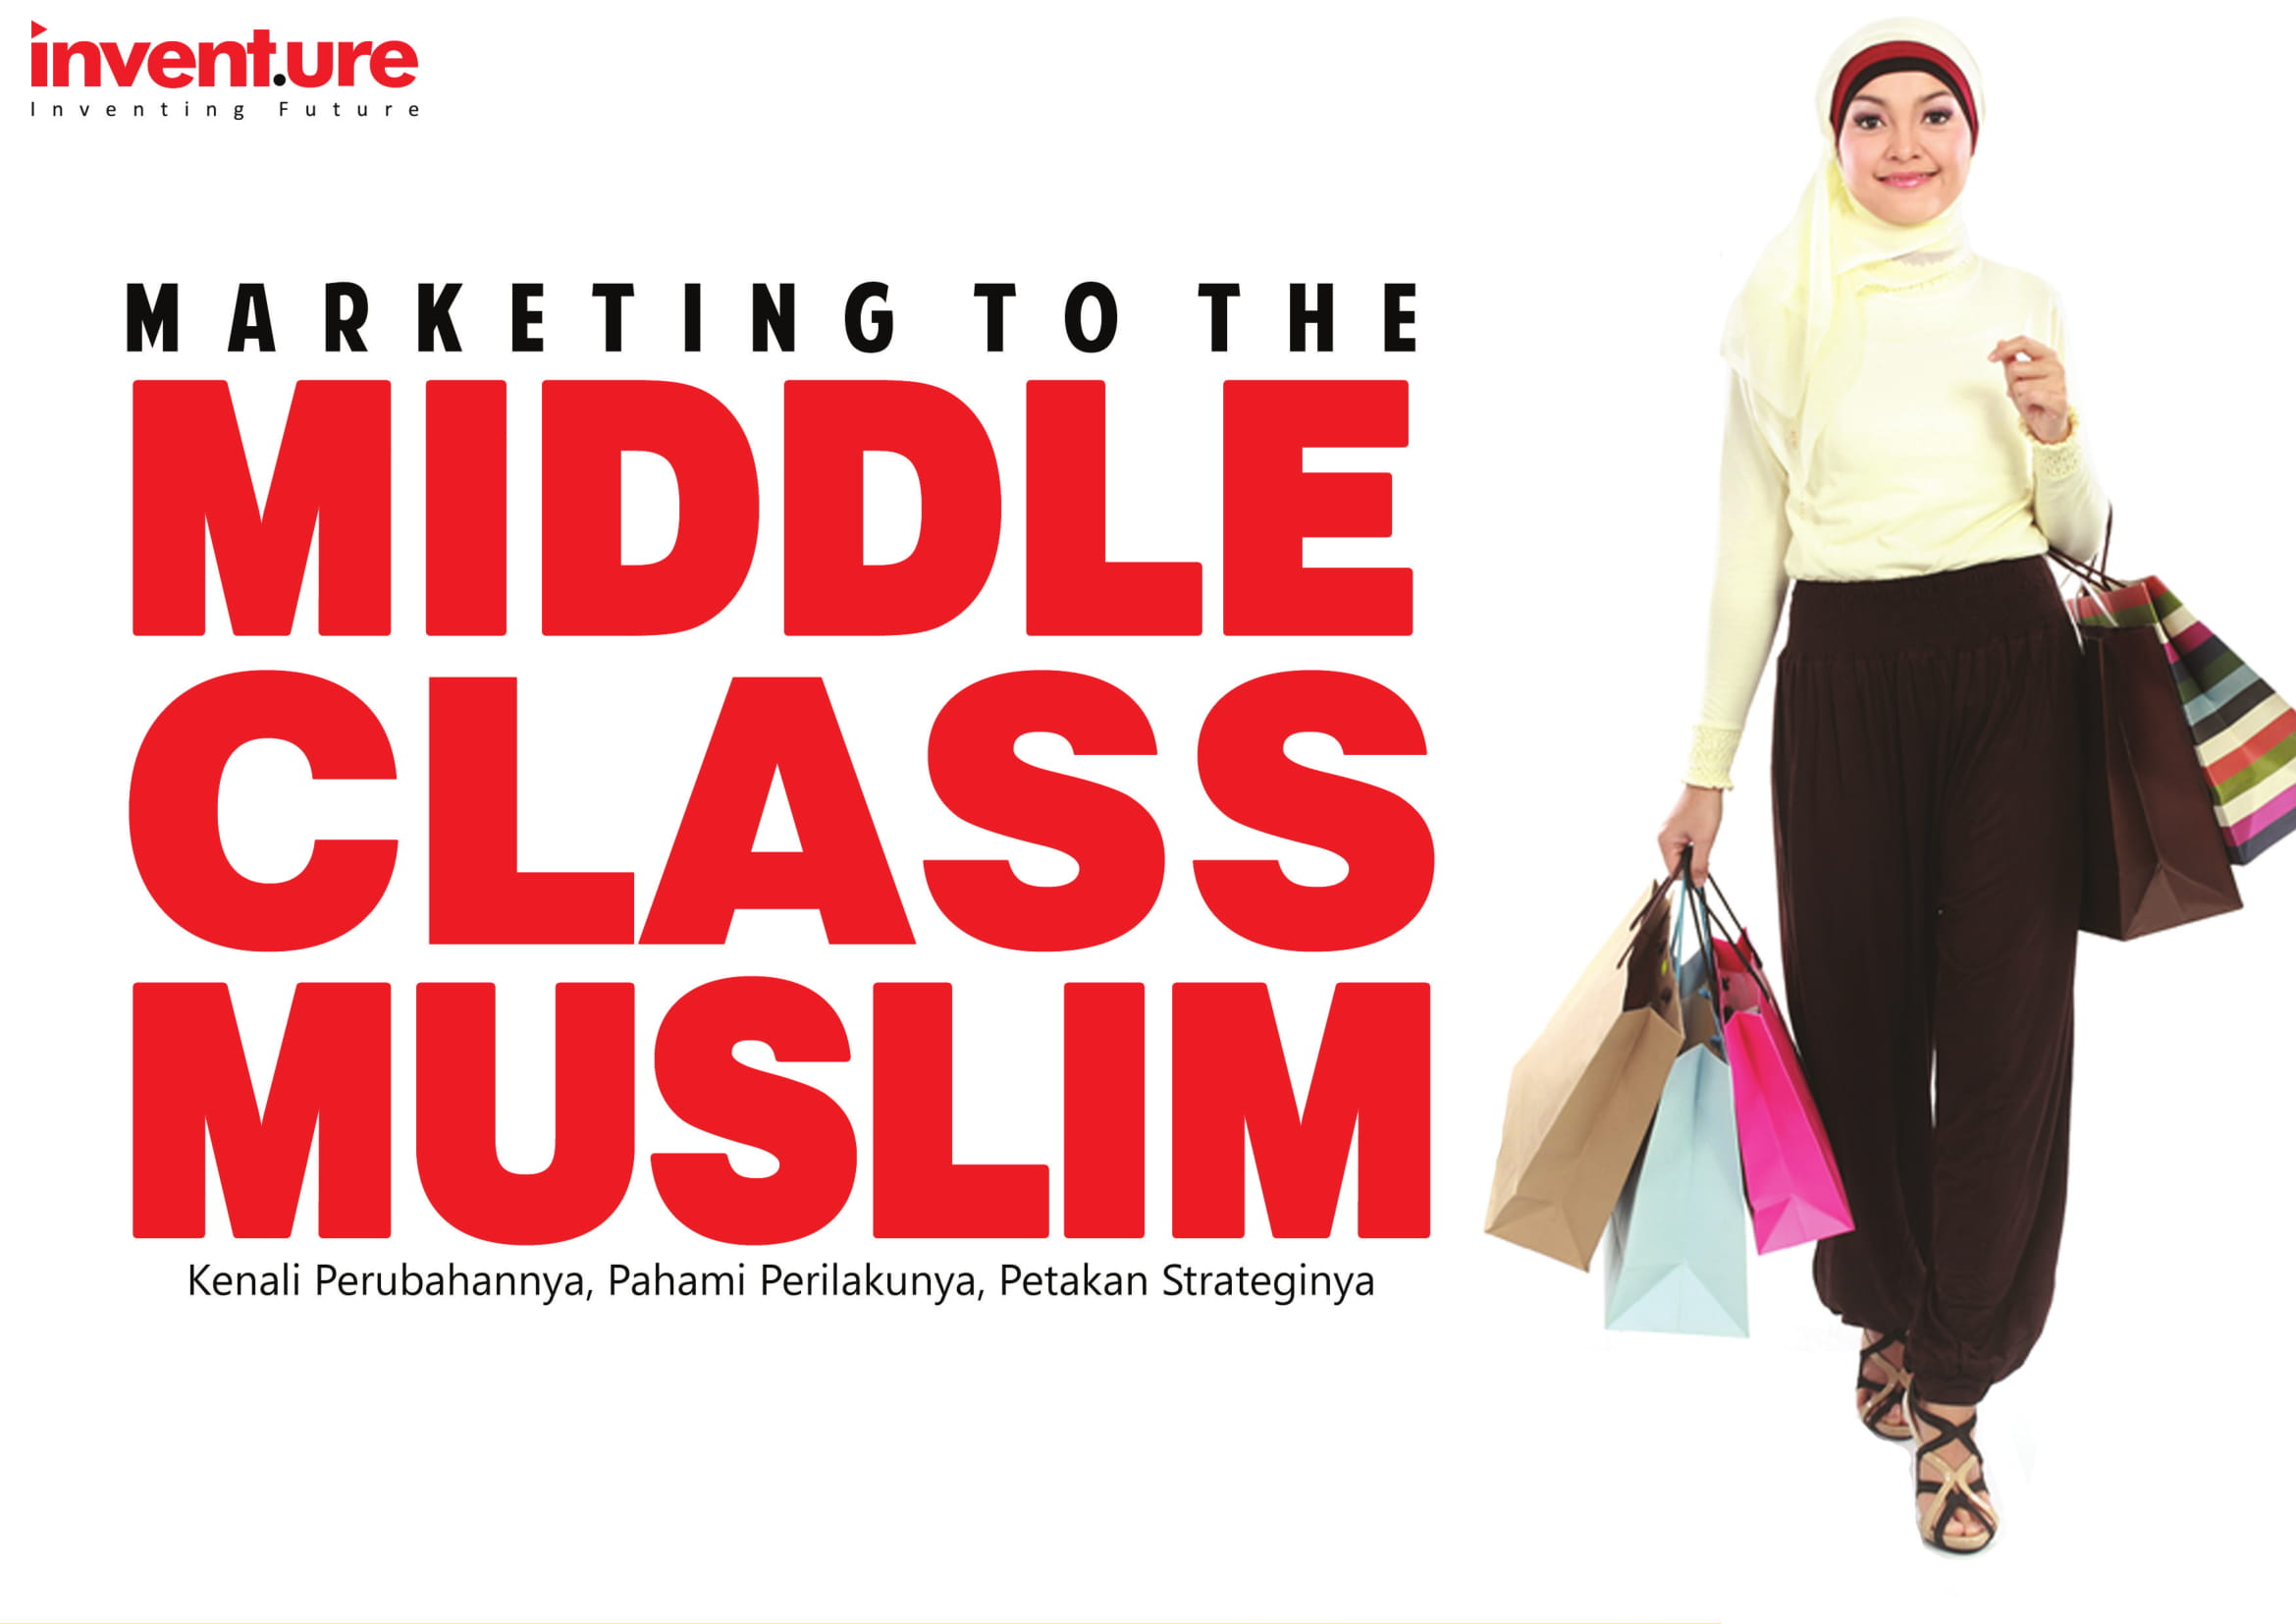 Indonesia Middle Class Muslim